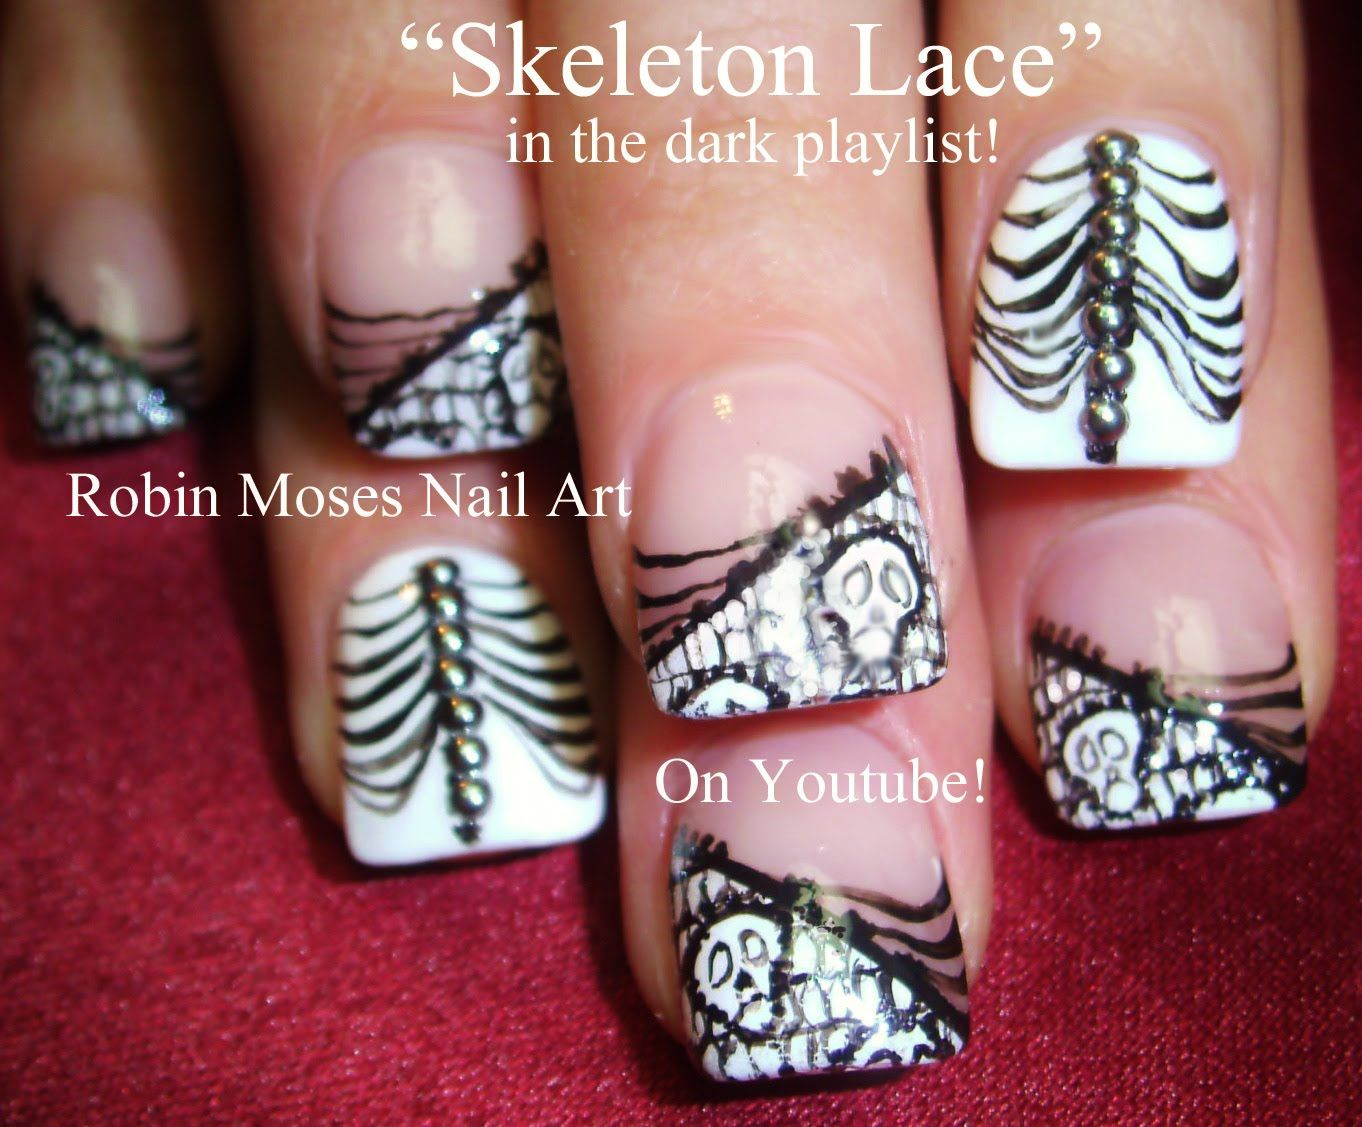 Diy nail art for short nails skeleton lace nails tutorial fall diy nail art for short nails skeleton lace nails tutorial prinsesfo Choice Image